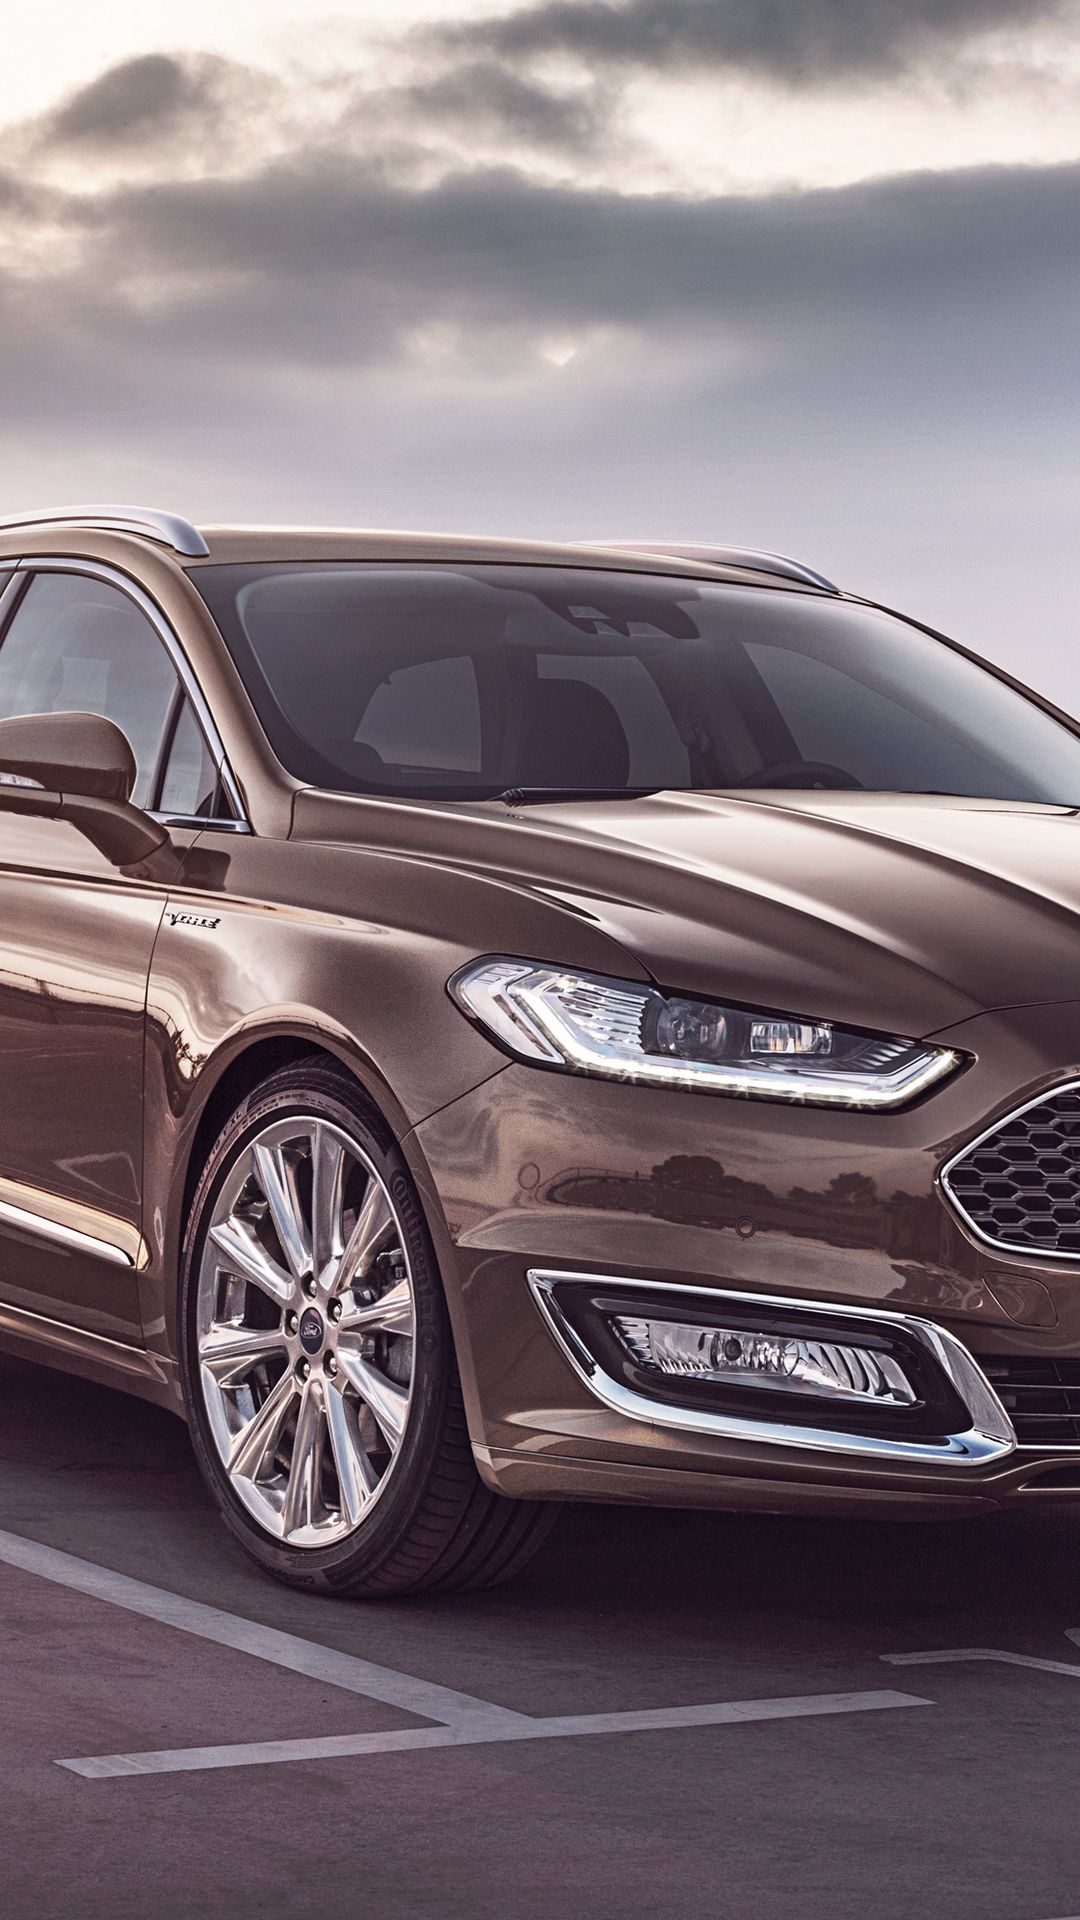 Ford Vignale Mondeo Wallpapers Free Download